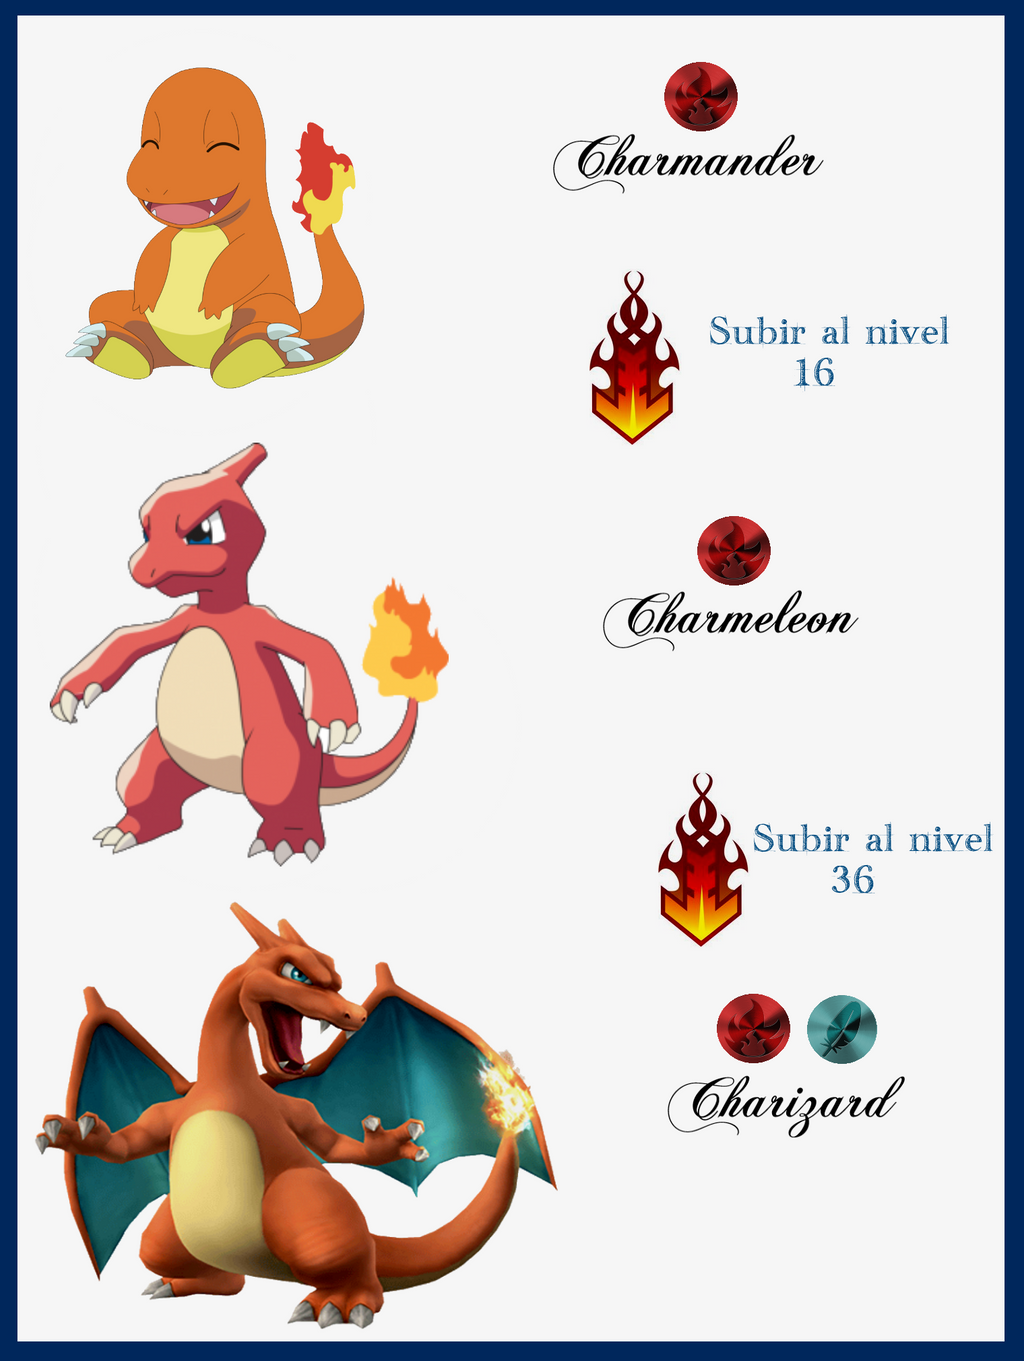 002 Charmander Evoluciones by Maxconnery on DeviantArt